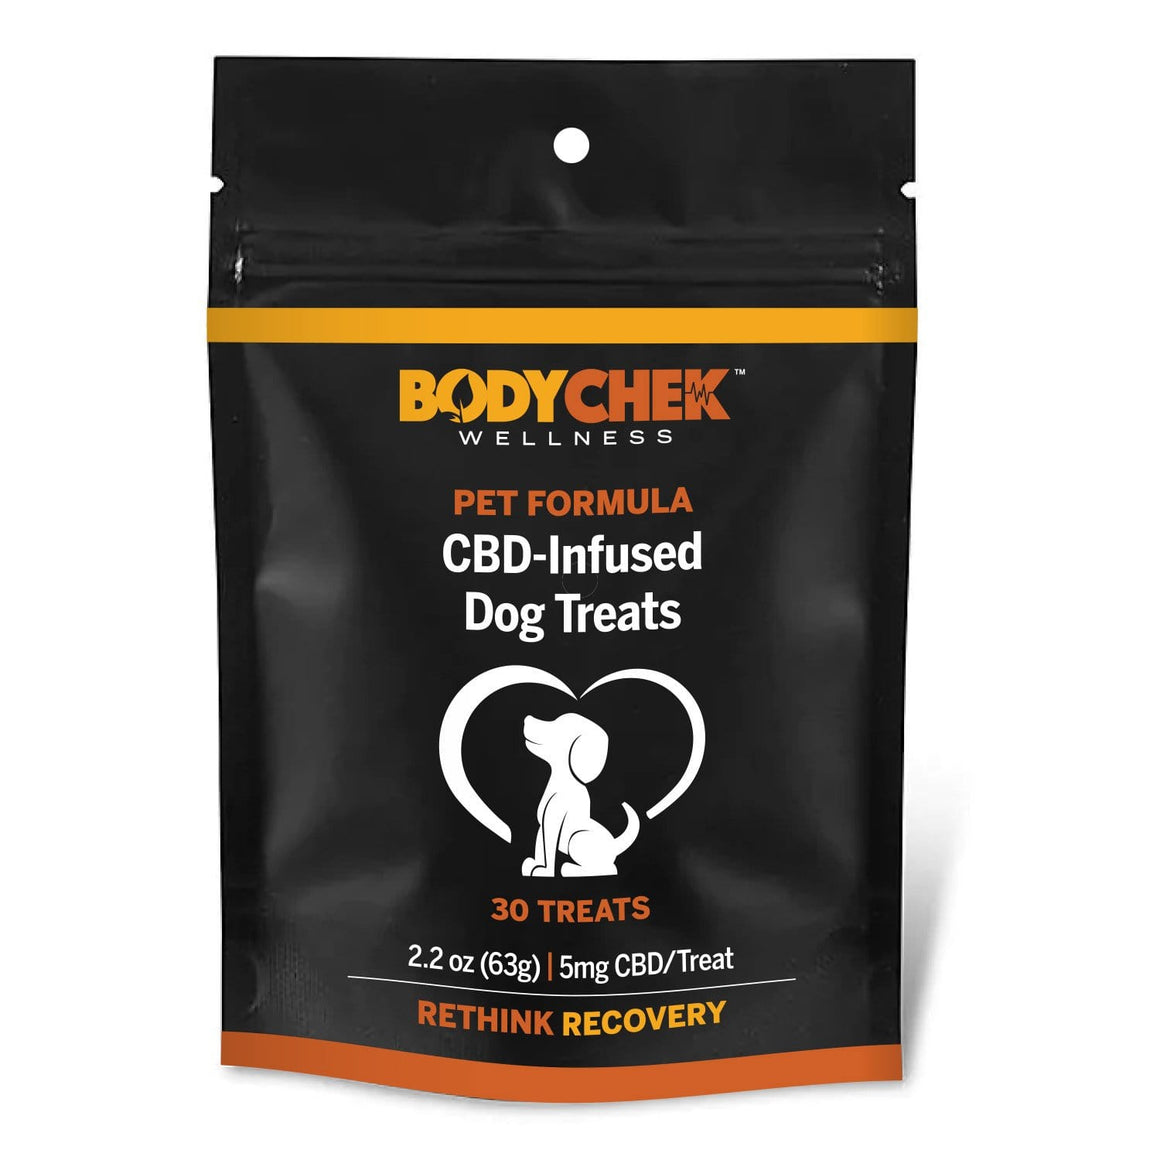 PET FORMULA CBD Infused Dog Treats